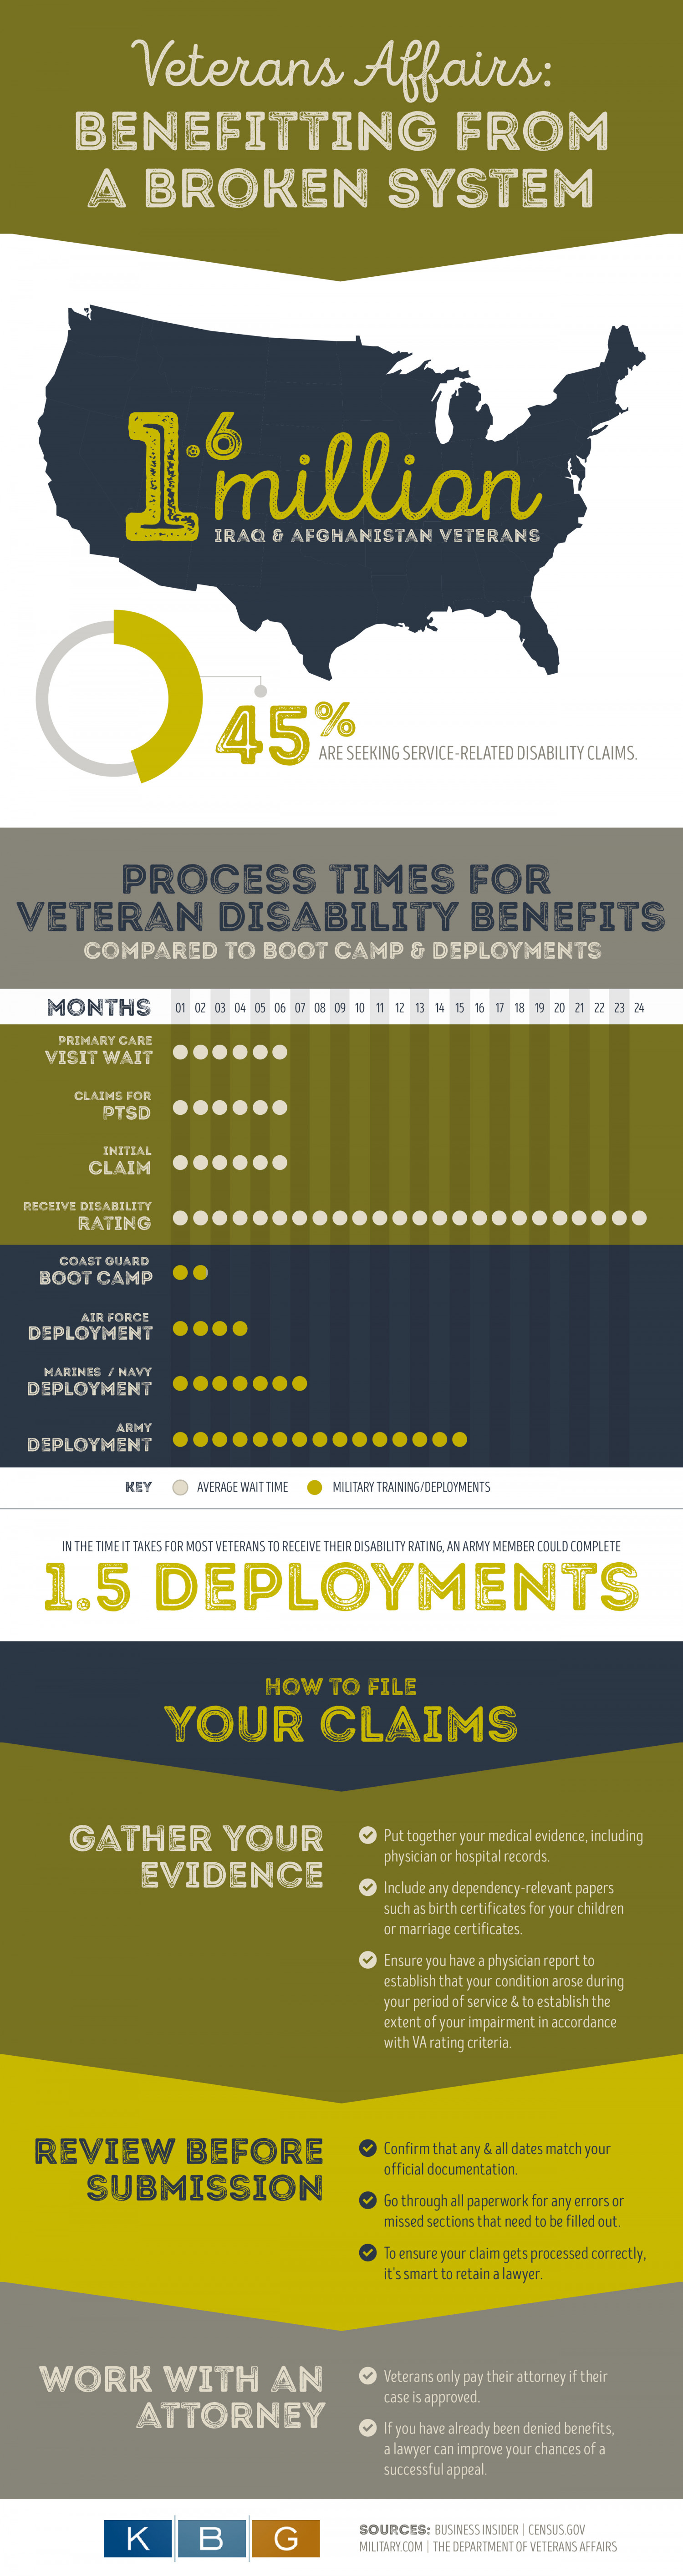 Veterans' Affairs: Benefitting from a Broken System Infographic